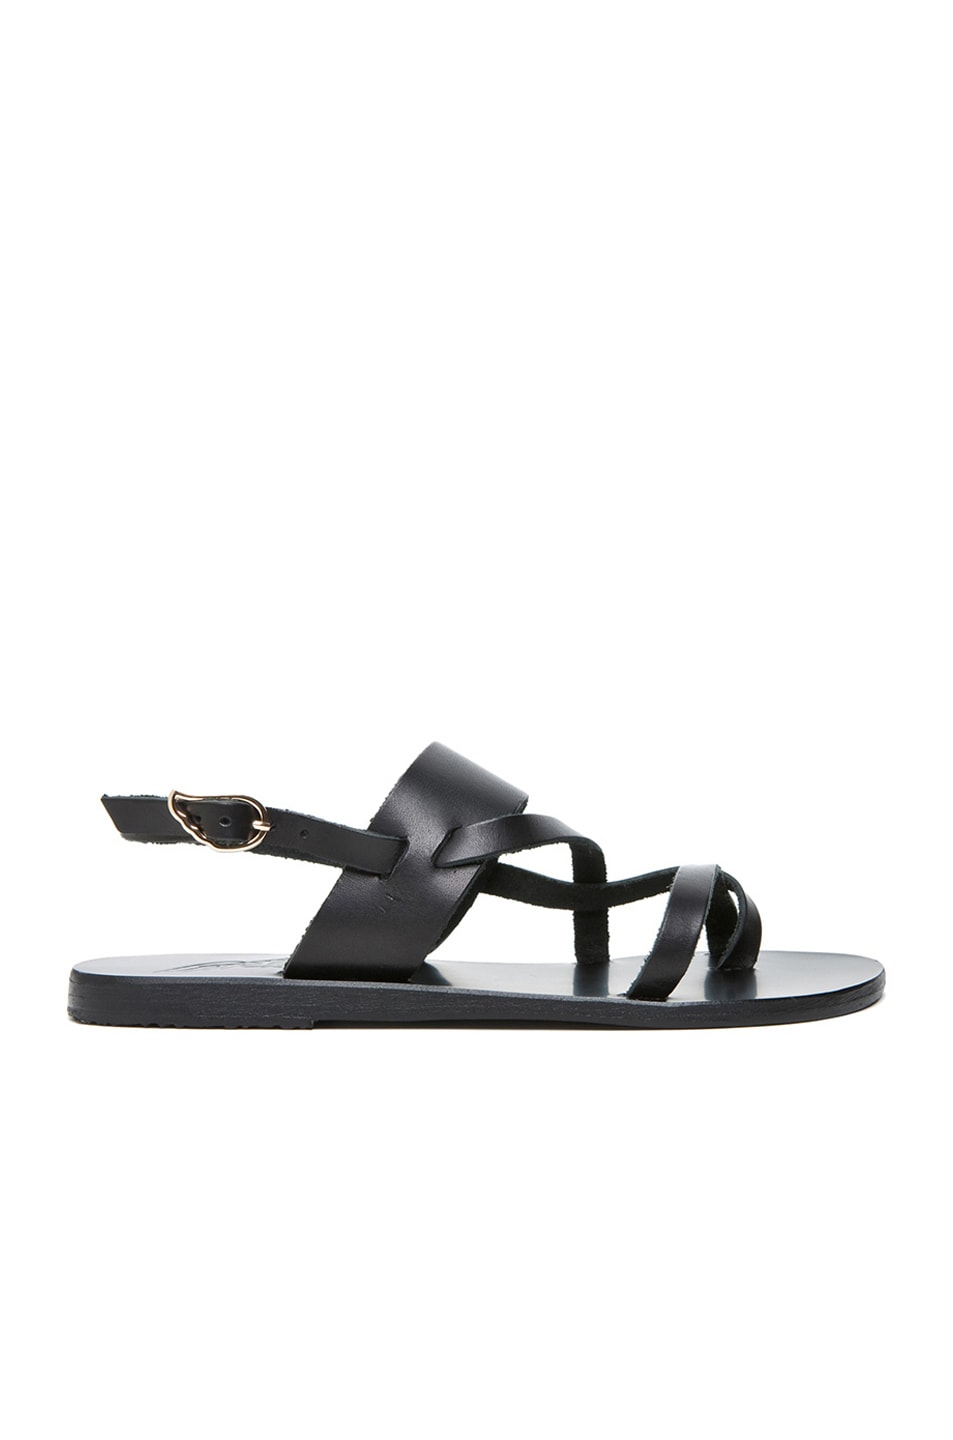 Image 1 of Ancient Greek Sandals Alethea Calfskin Leather Sandals in Black